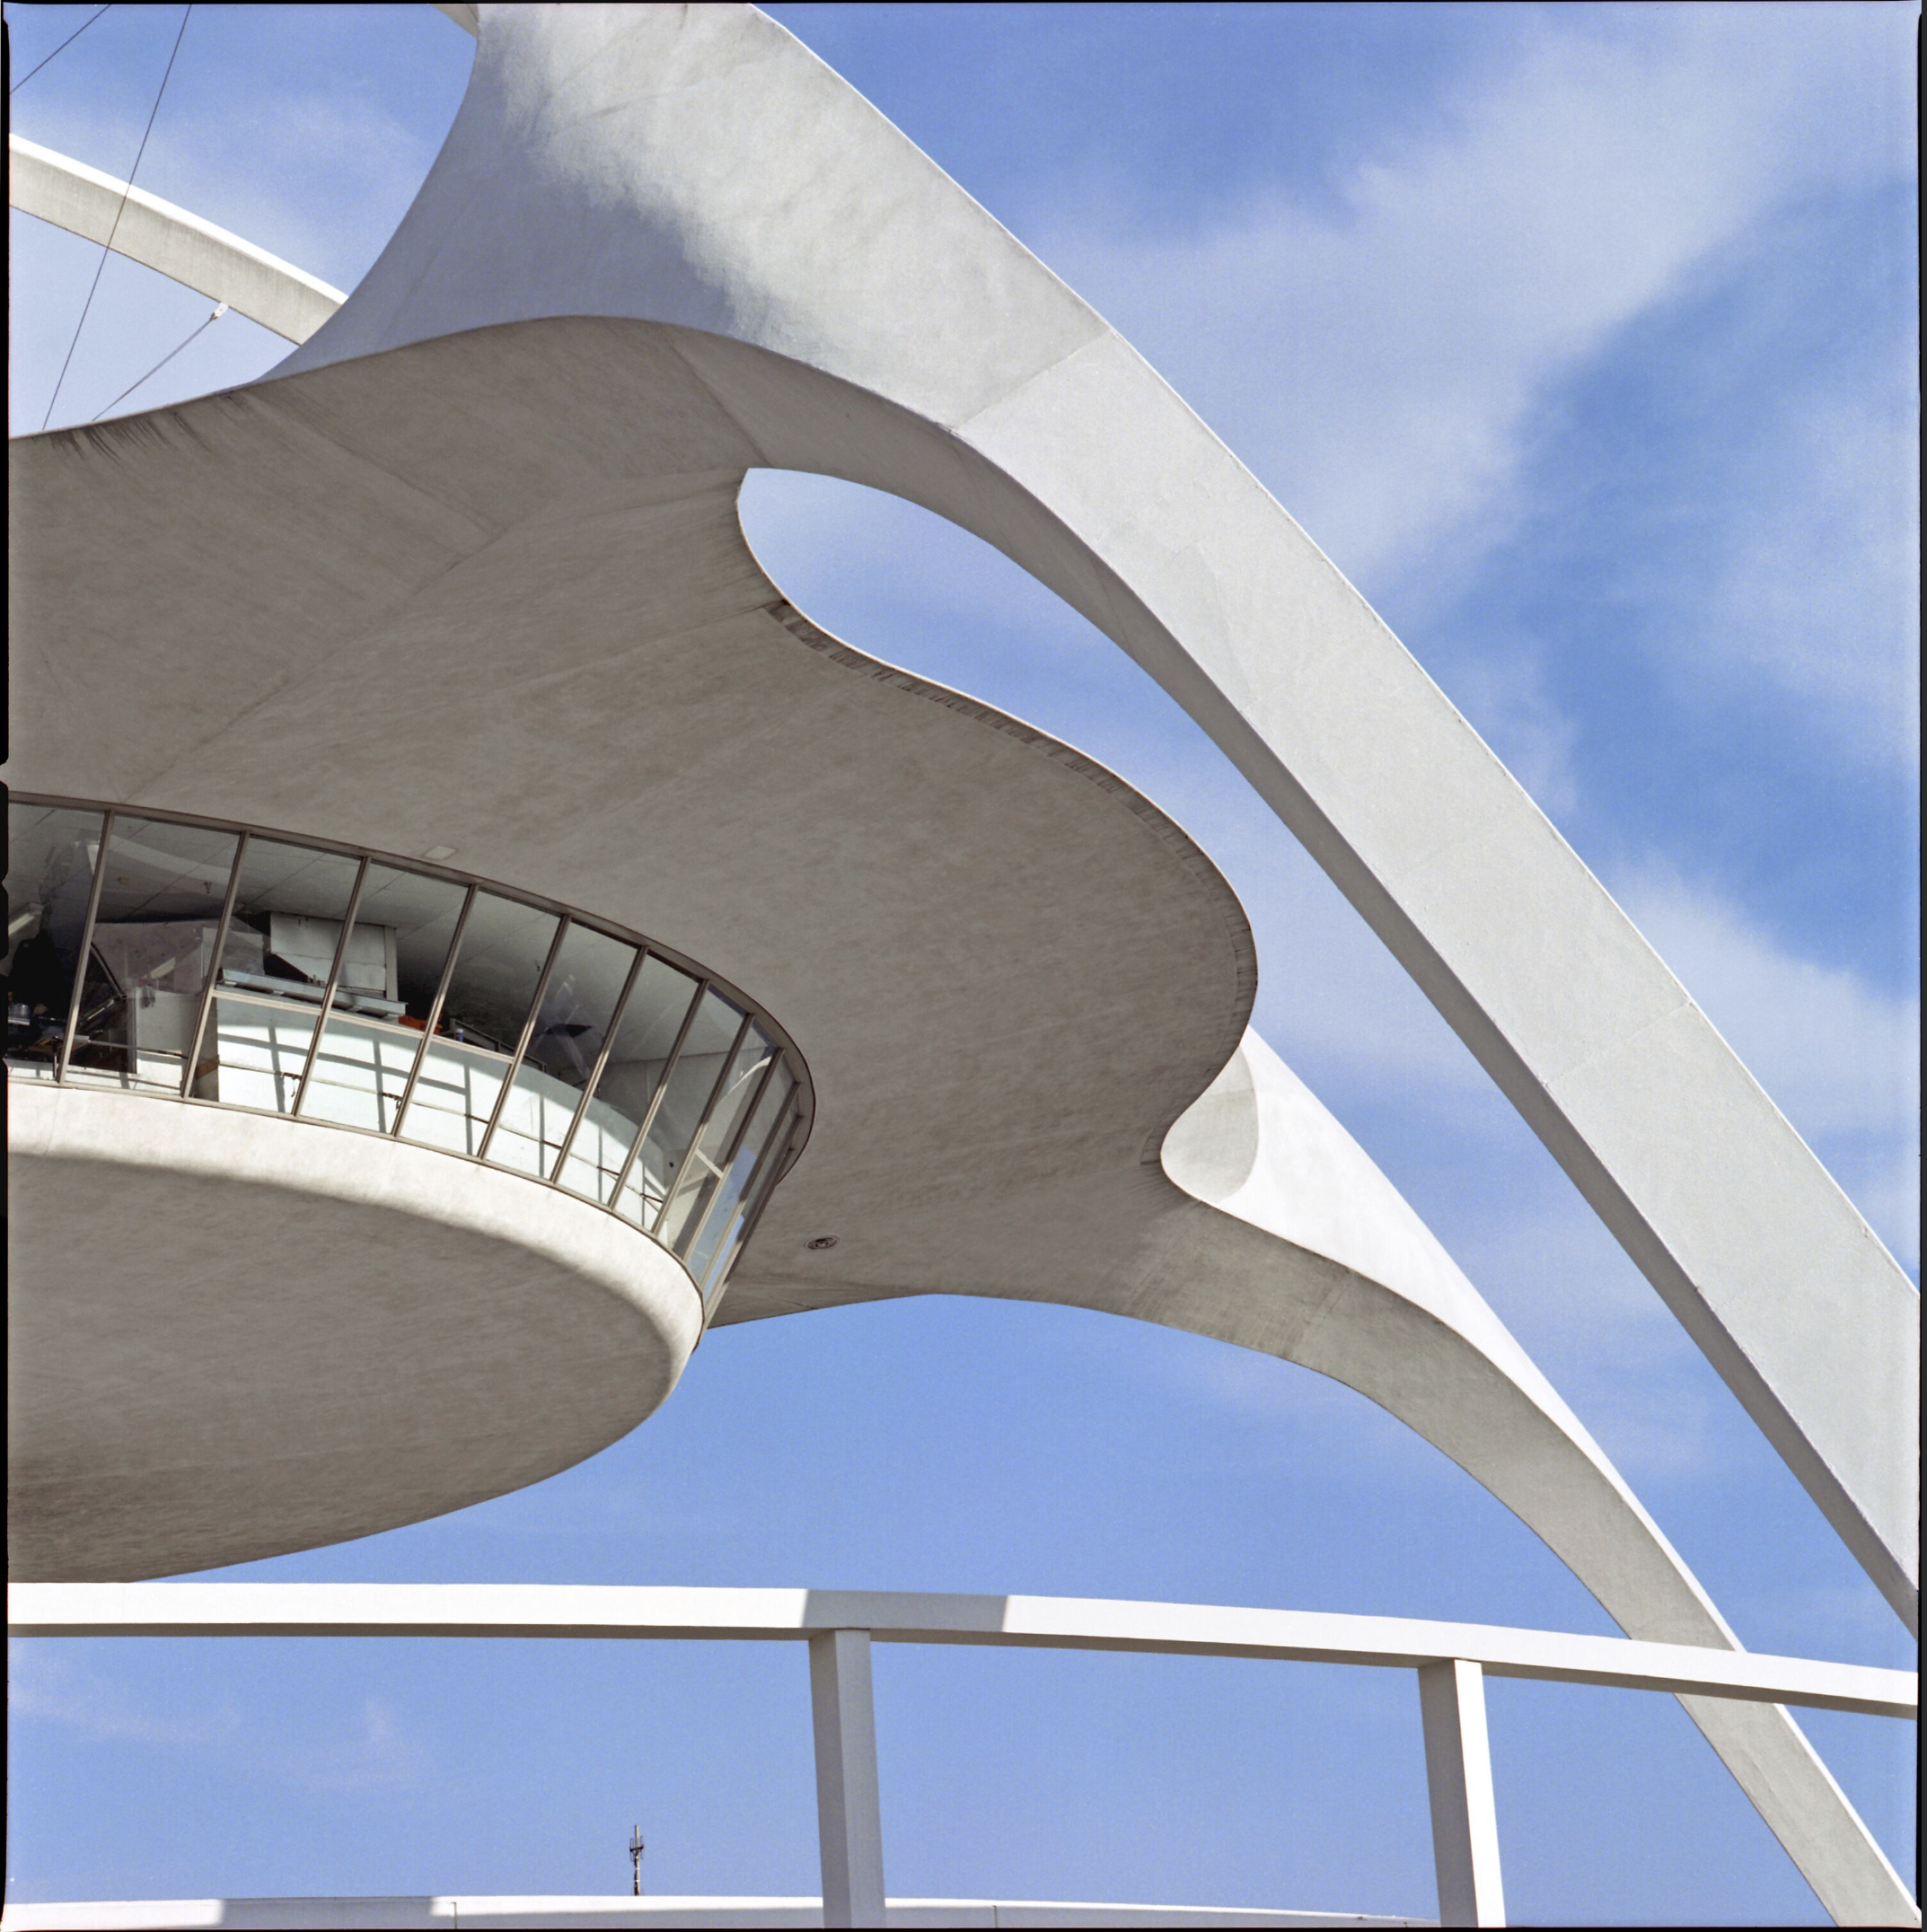 Los Angeles International Airport, Los Angeles, California, Pereira & Luckman architects, 2005